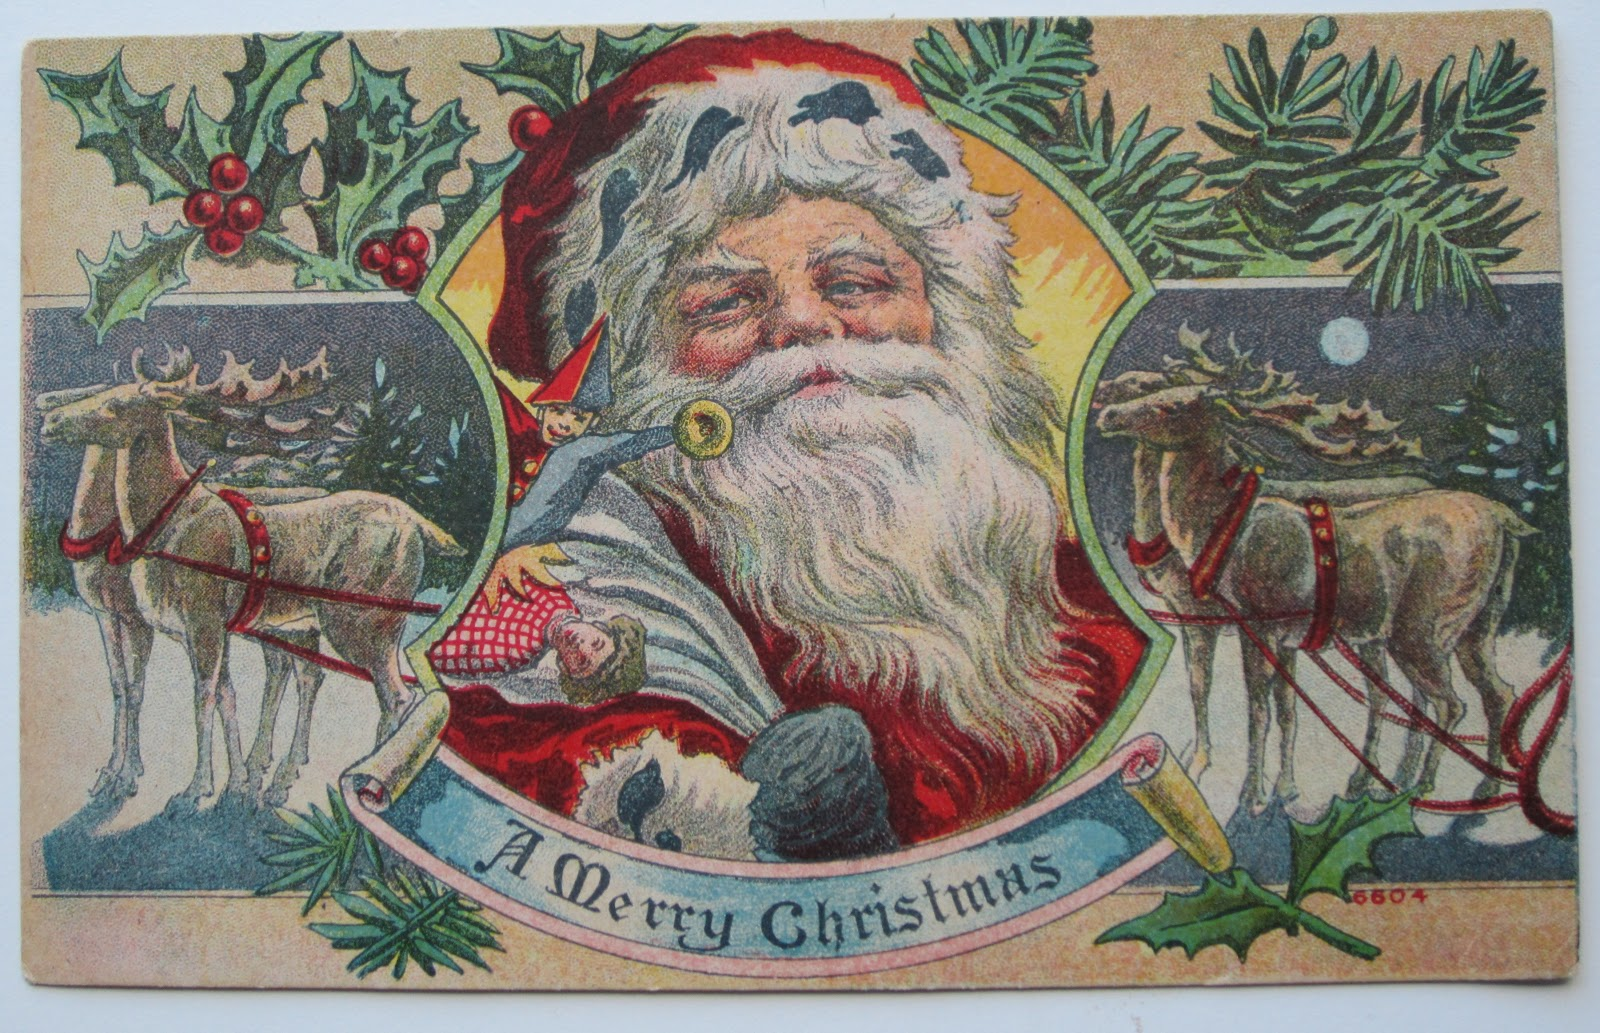 santa claus wishing you a merry christmas antique postcard